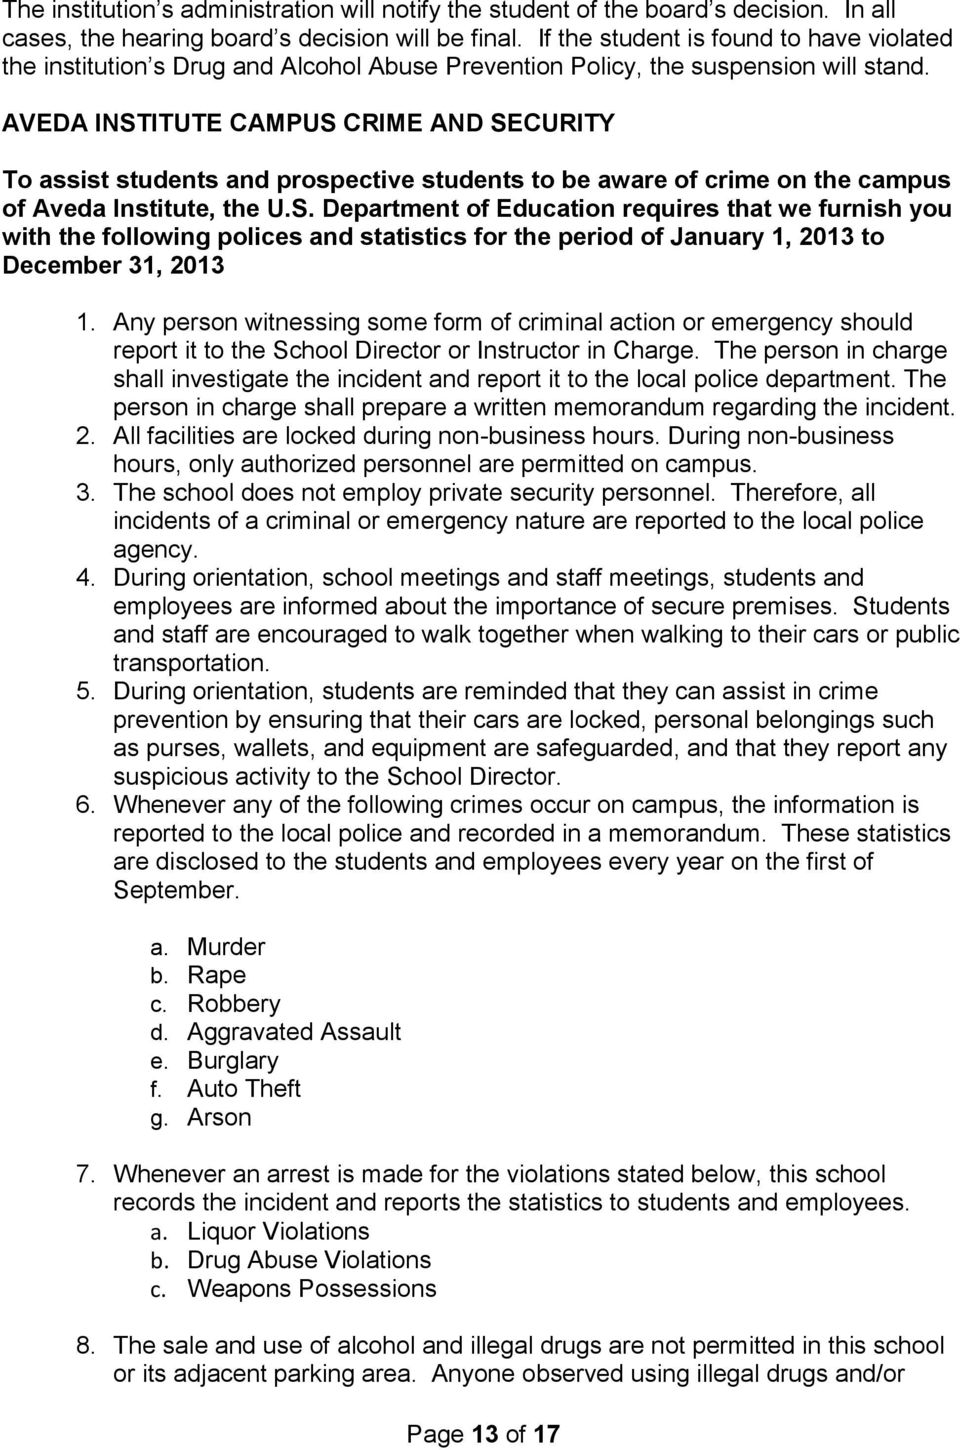 AVEDA INSTITUTE CAMPUS CRIME AND SECURITY To assist students and prospective students to be aware of crime on the campus of Aveda Institute, the U.S. Department of Education requires that we furnish you with the following polices and statistics for the period of January 1, 2013 to December 31, 2013 1.